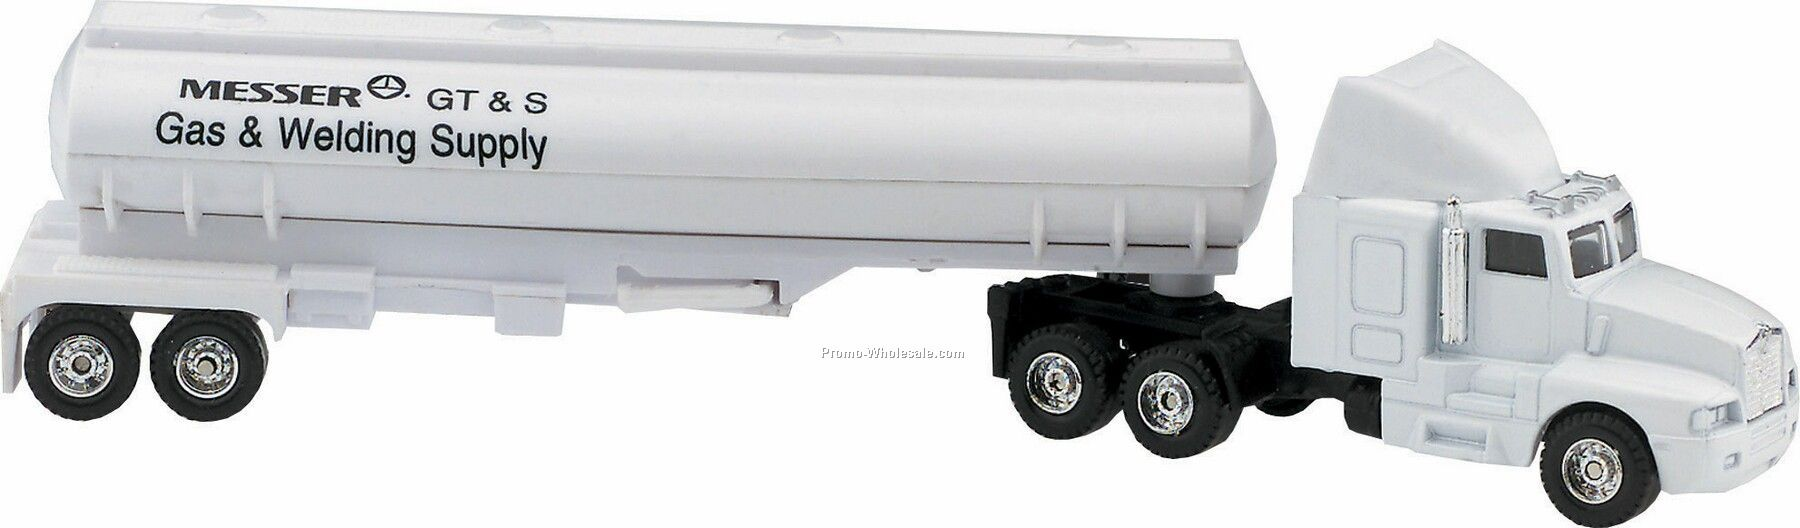 "7"" Die Cast Conventional Hauler Truck With Tanker"